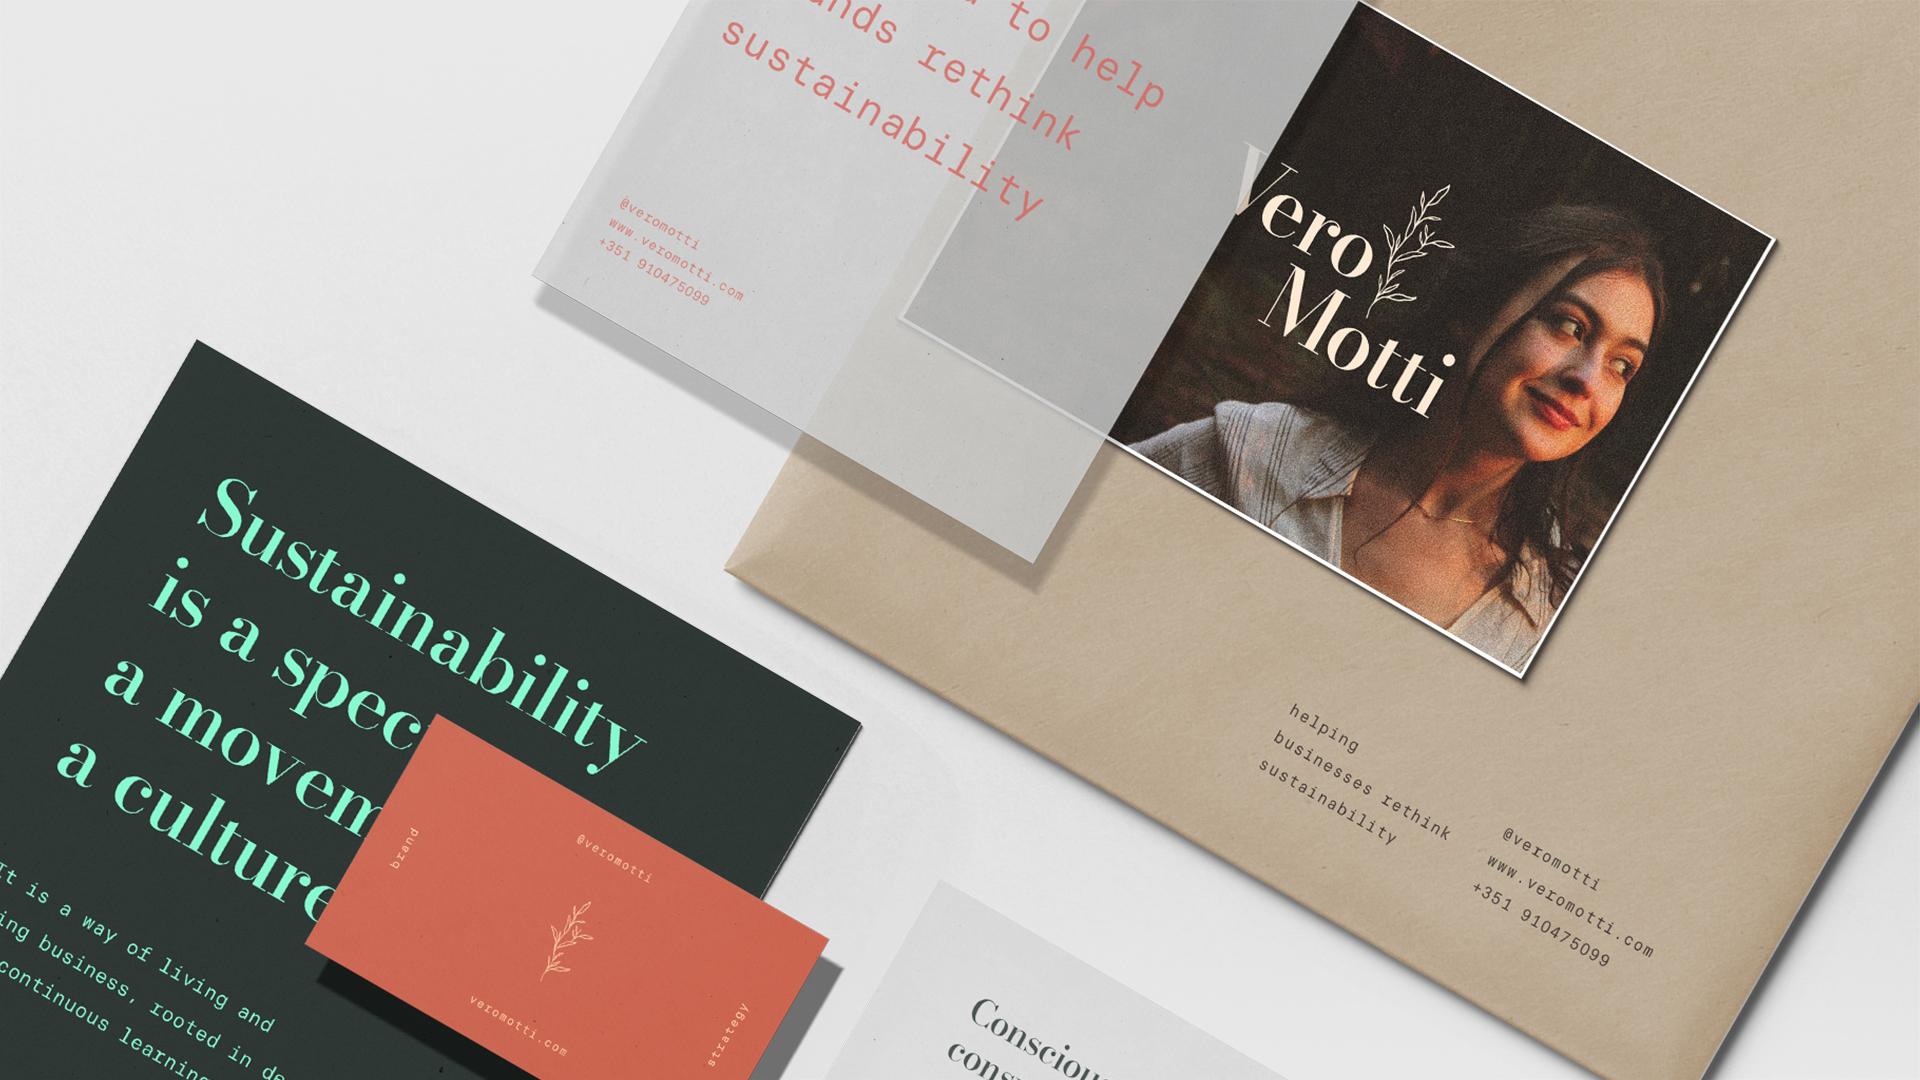 Muniz&Co's stationery designs